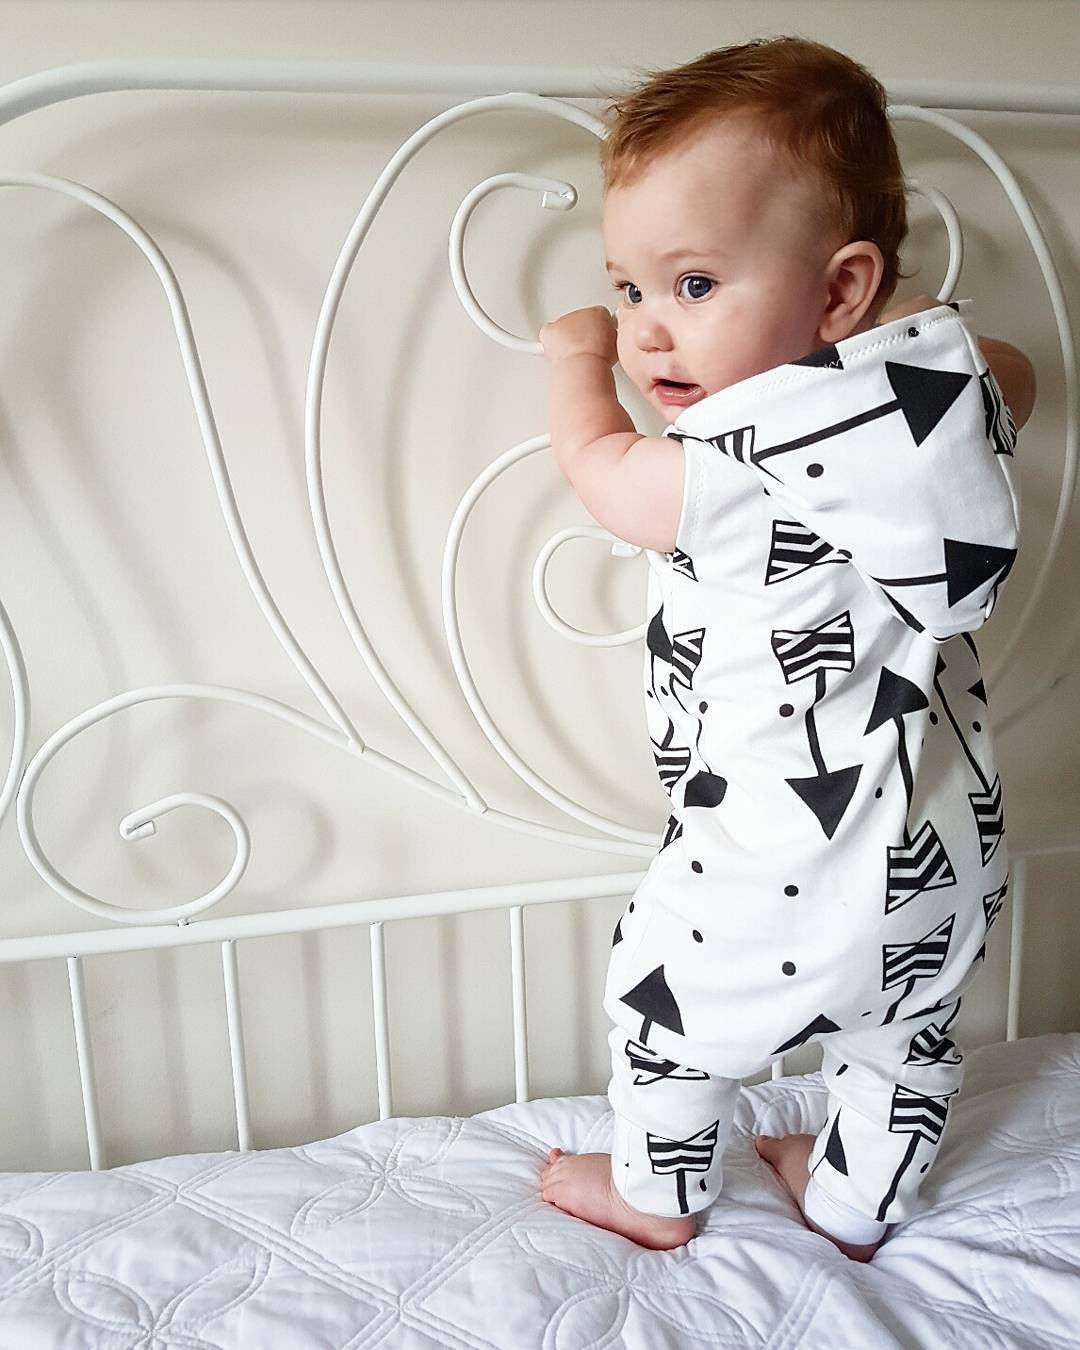 2018 new cute Children Sleeveless Arrow Clothing Infant Baby Boy Kid Hooded Sleeveles Romper Jumpsuit Outfits Clothes puseky 2017 infant romper baby boys girls jumpsuit newborn bebe clothing hooded toddler baby clothes cute panda romper costumes